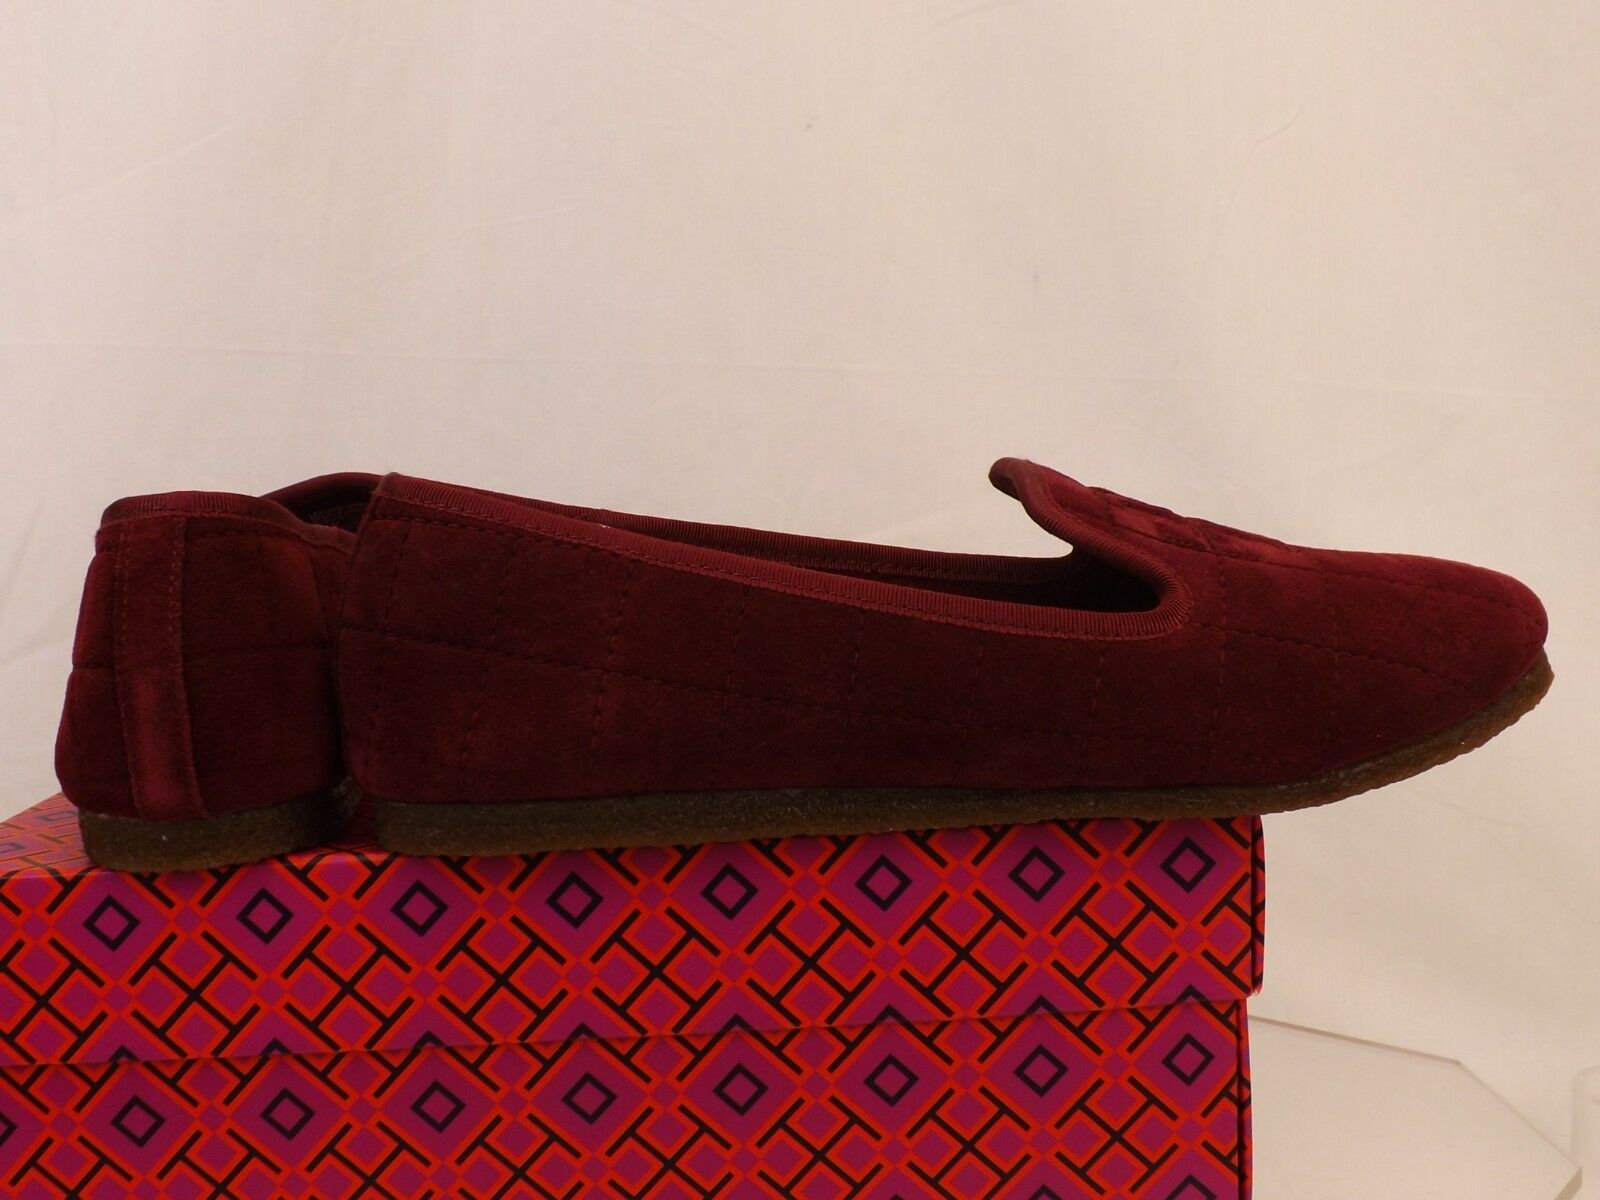 NIB TORY BURCH COWLEY PORT ROYAL QUILTED SUEDE SUEDE SUEDE REVA LAMB FUR SMOKING SLIPPERS 8 833a97